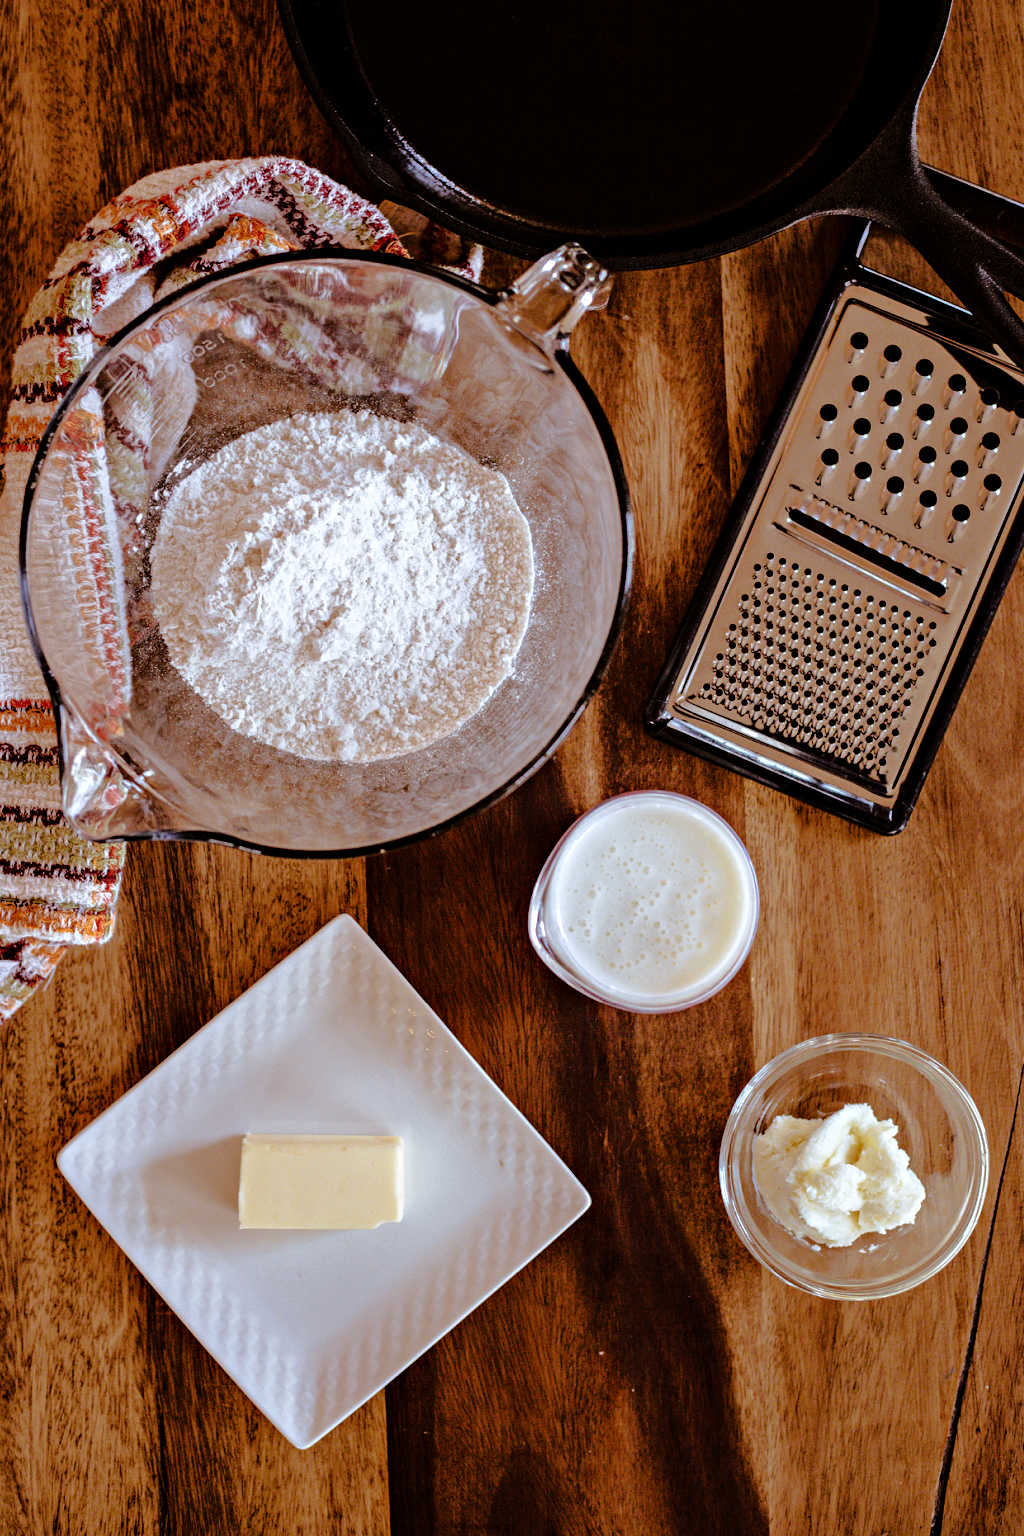 ingredients for biscuit bread in an iron skillet